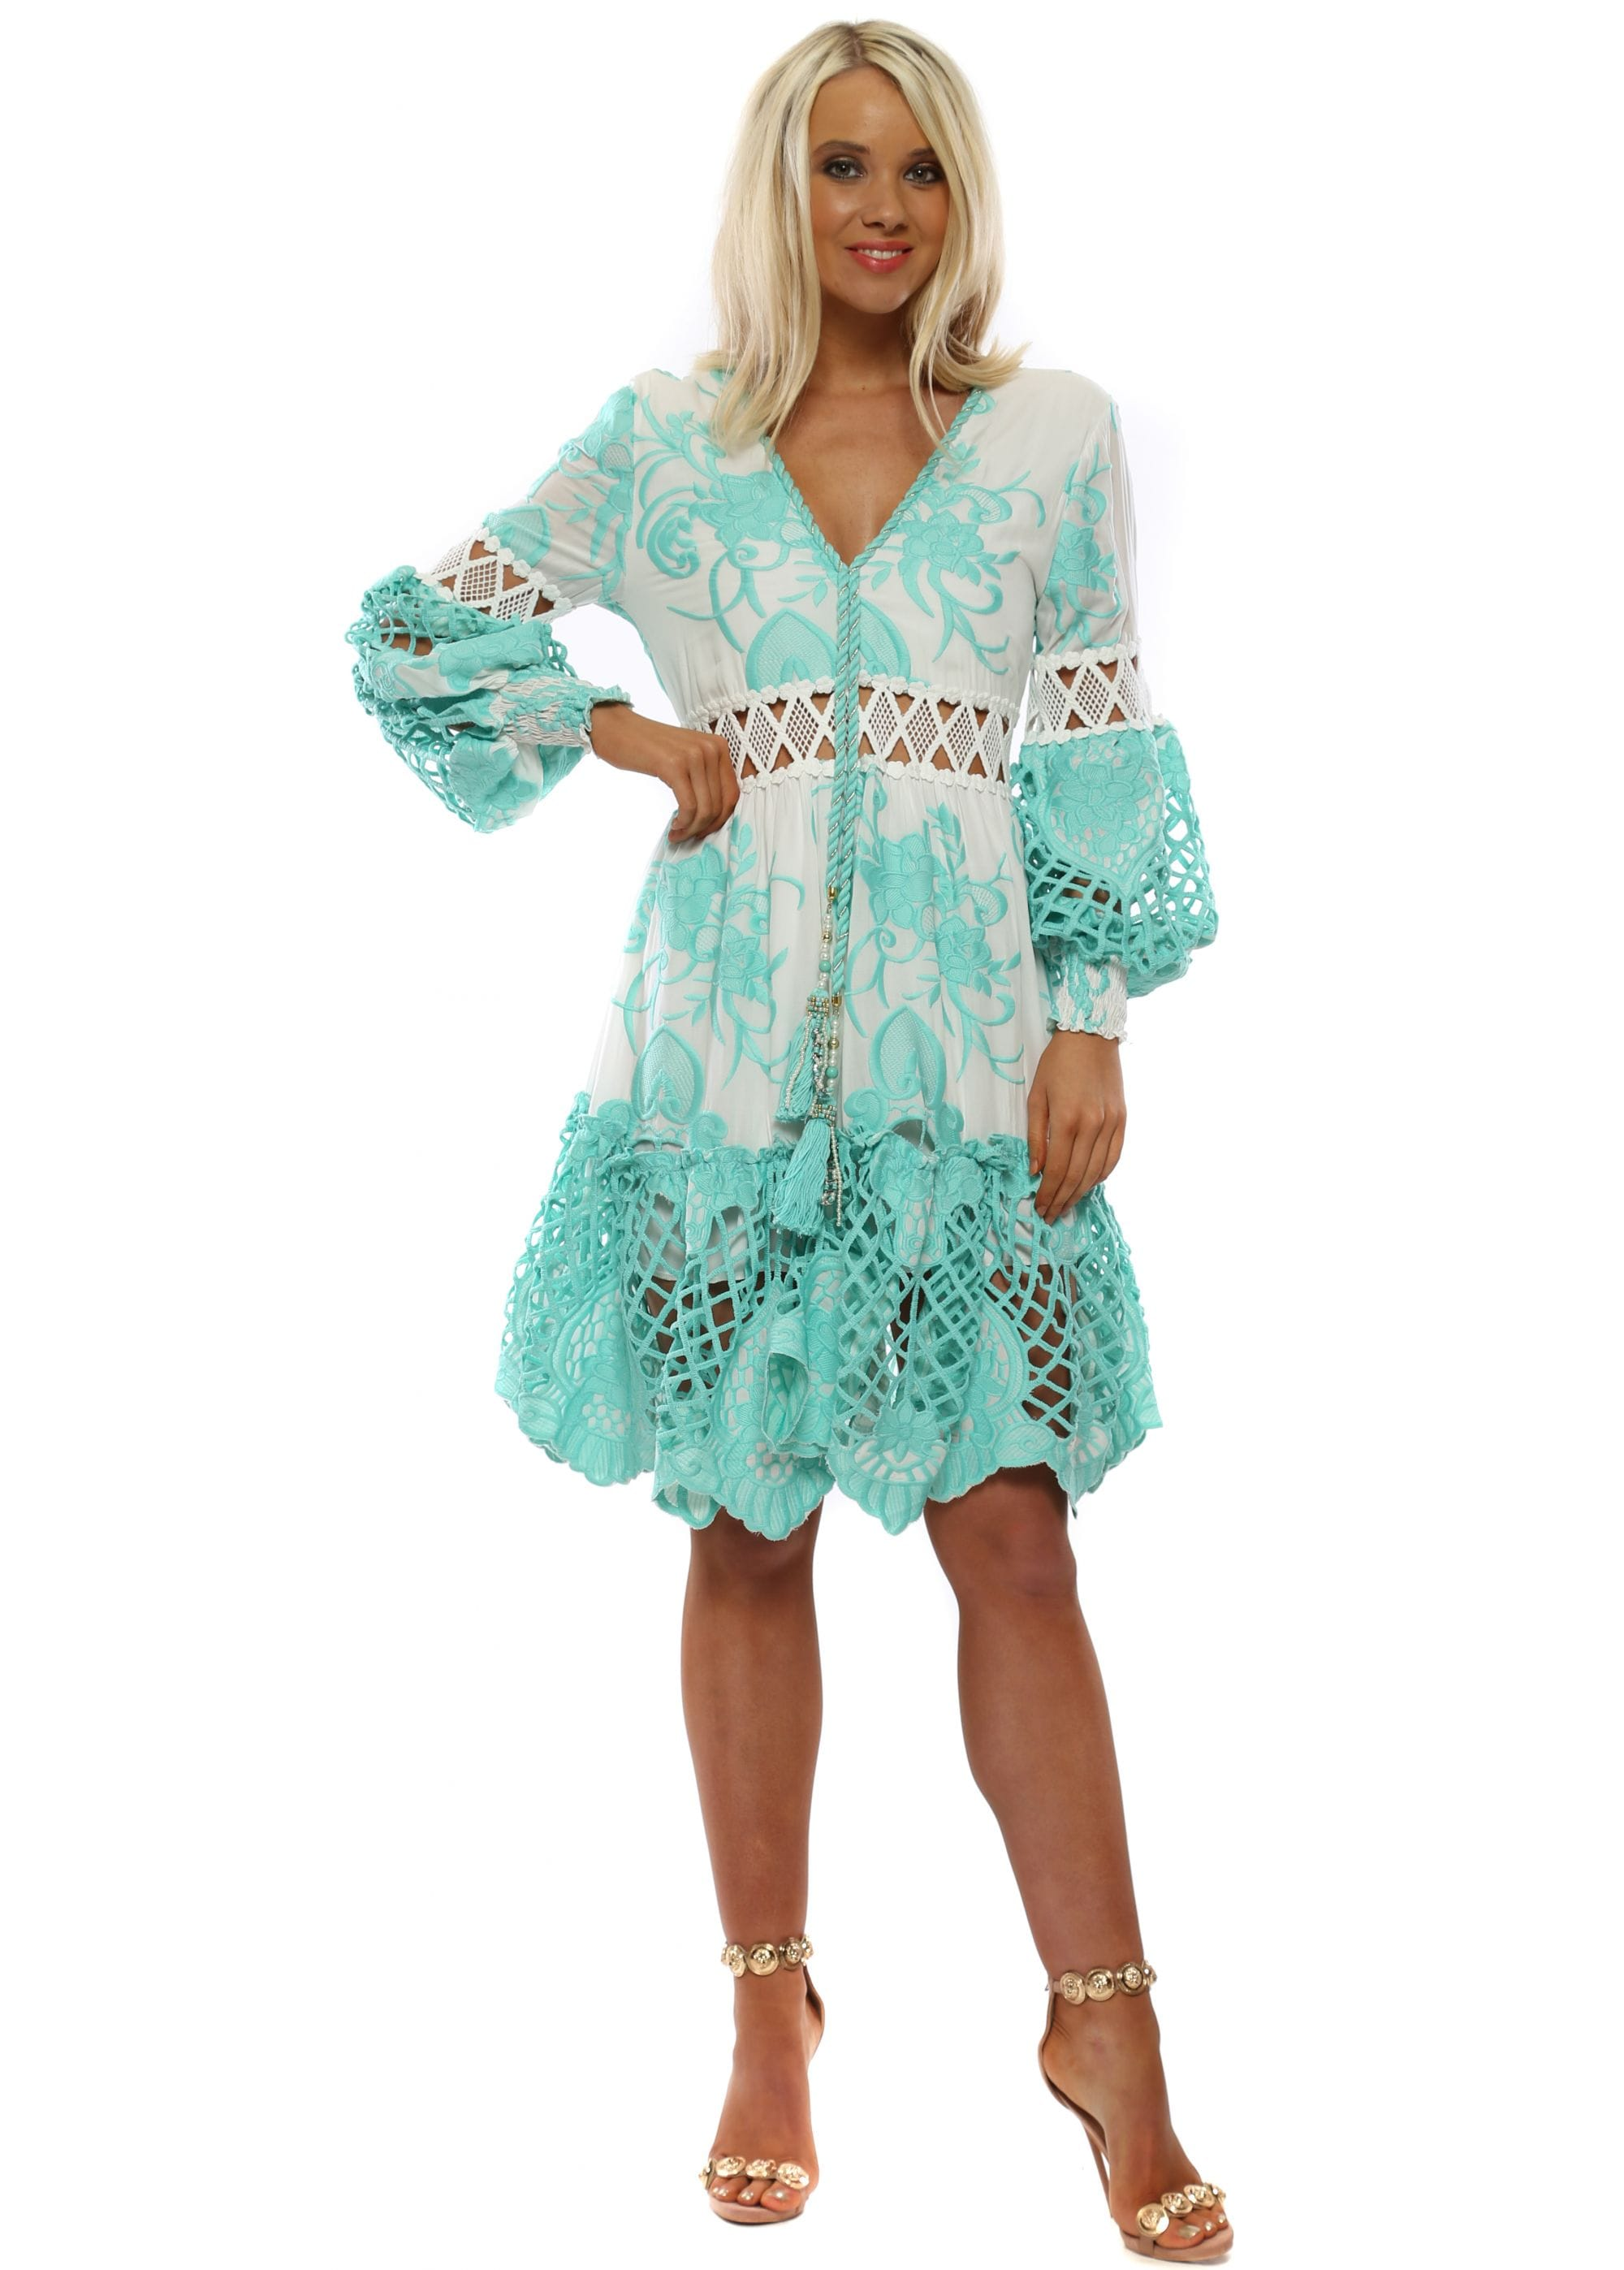 72152b993c7e Turquoise  amp  White Floral Embroidered Midi Dress